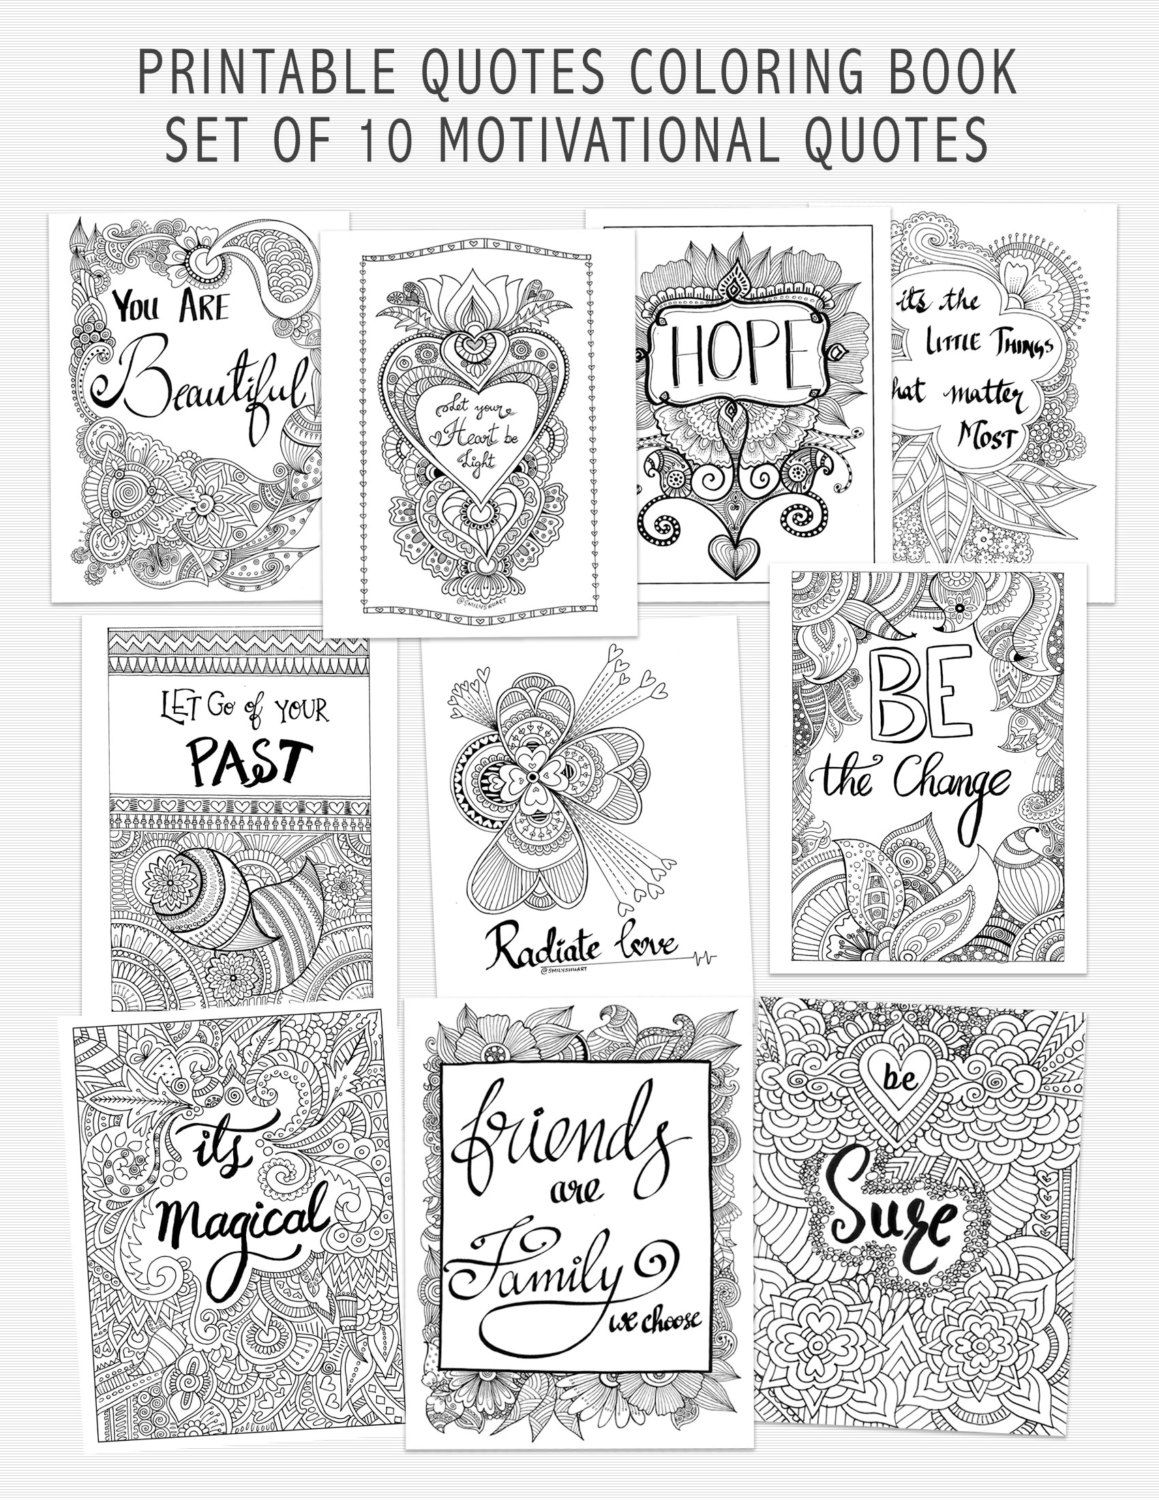 Printable Quote Coloring Book Self Help Adult Coloring